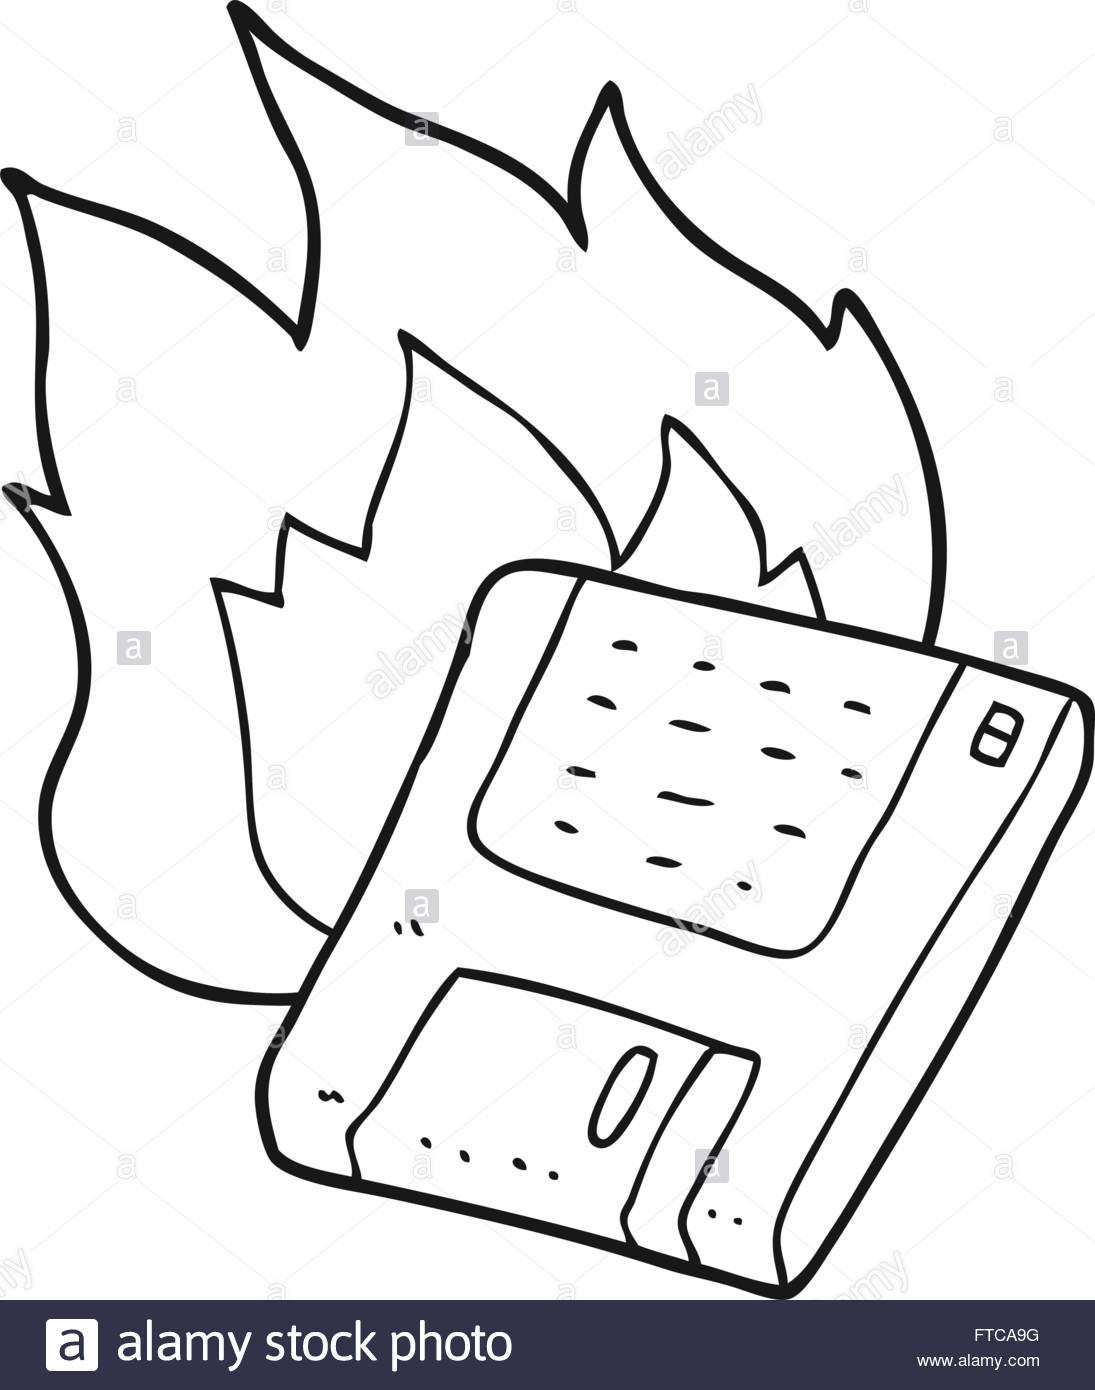 1095x1390 Freehand Drawn Black And White Cartoon Old Computer Disk Burning